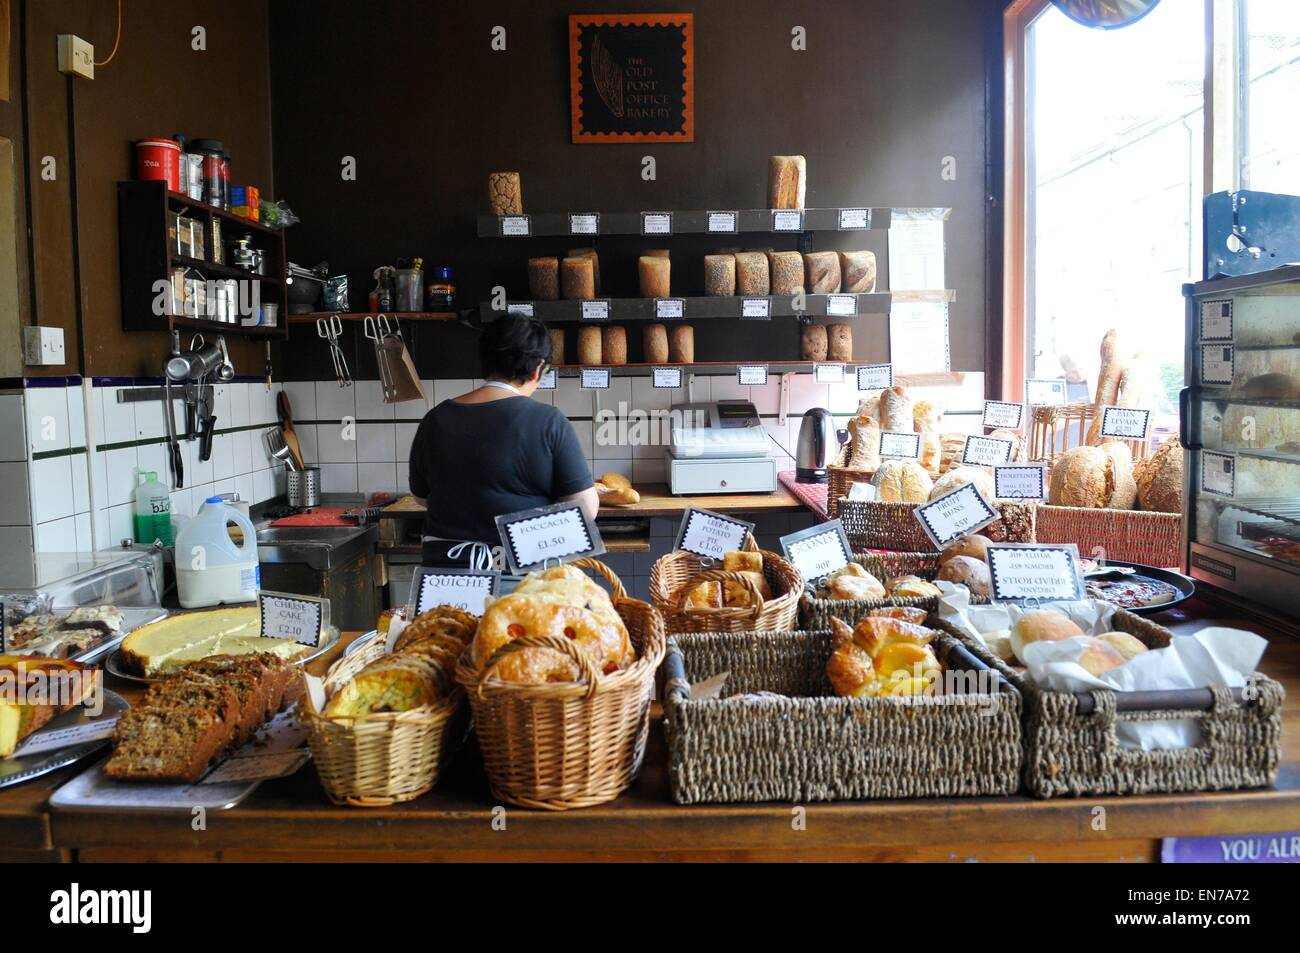 The Old Post Office Bakery, Stockwell/Clapham North, London, England, UK - Stock Image